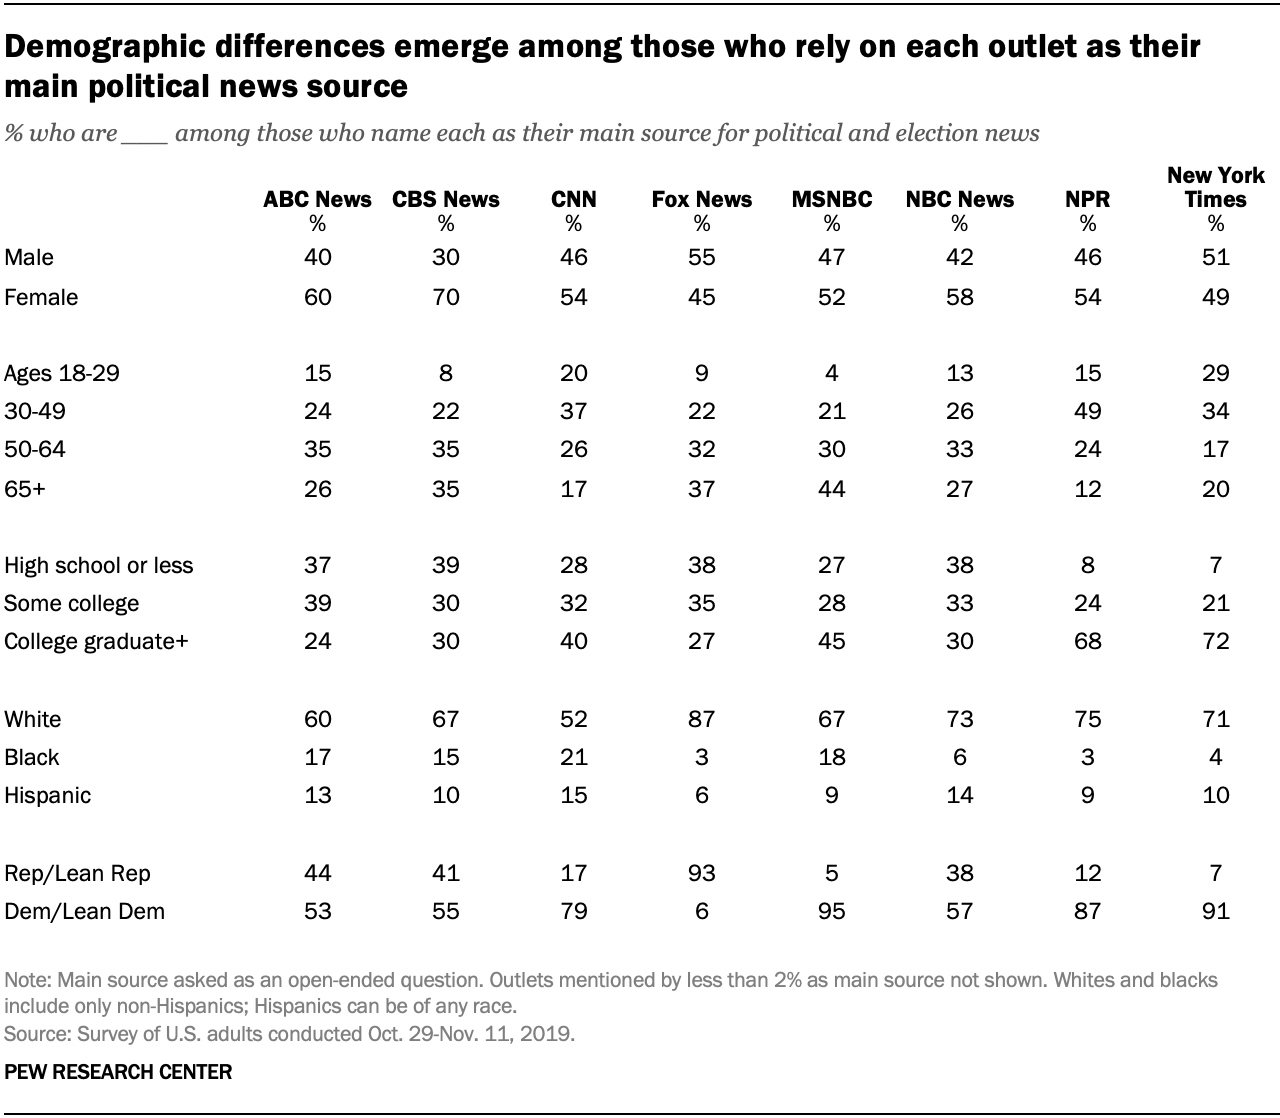 Demographic differences emerge among those who rely on each outlet as their main political news source